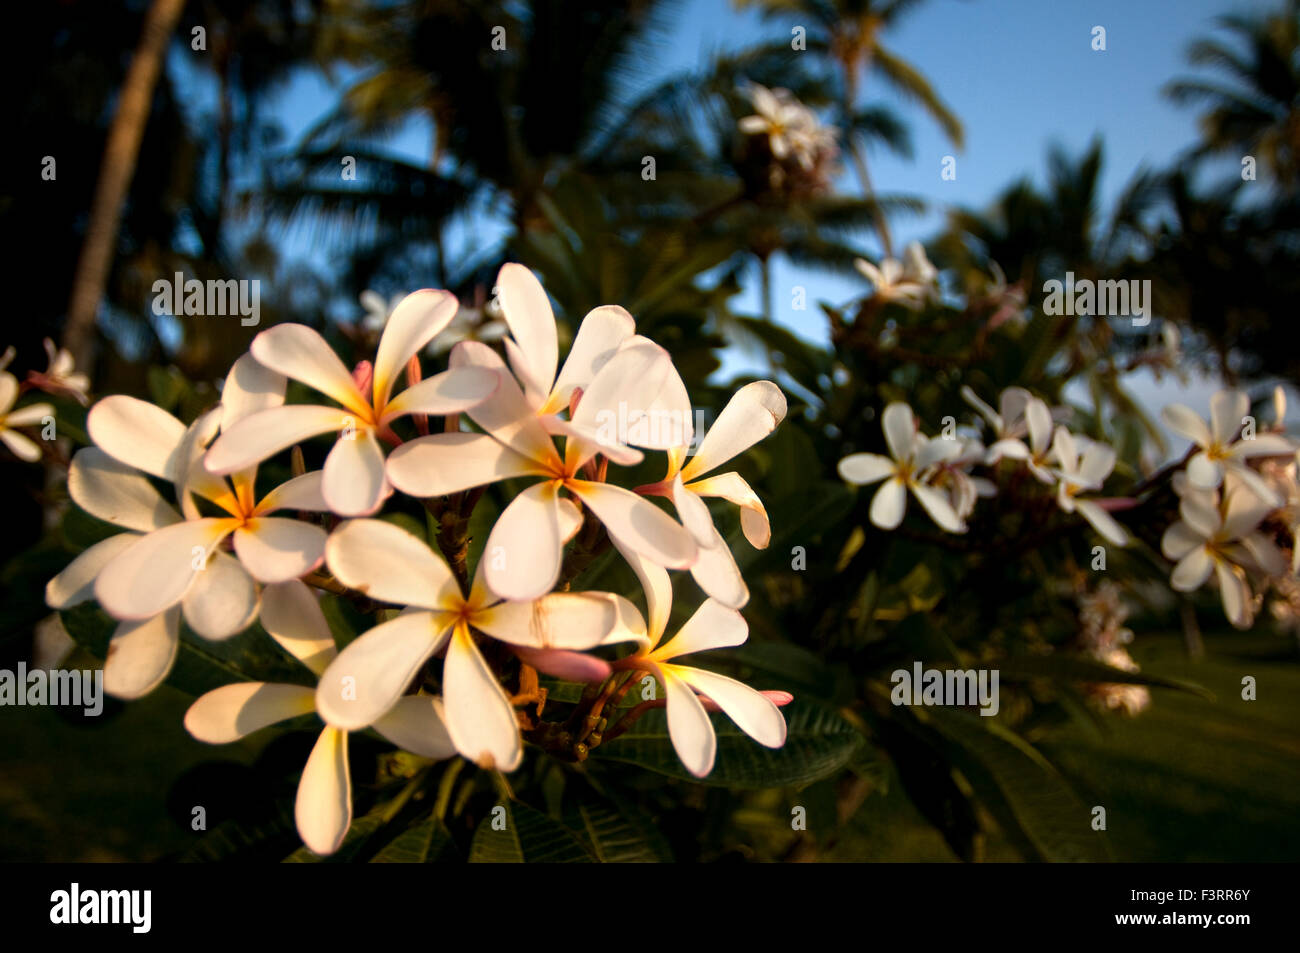 Flower maui nobody stock photos flower maui nobody stock images plumera the most famous flowers of hawaii plumeria common name frangipani is a izmirmasajfo